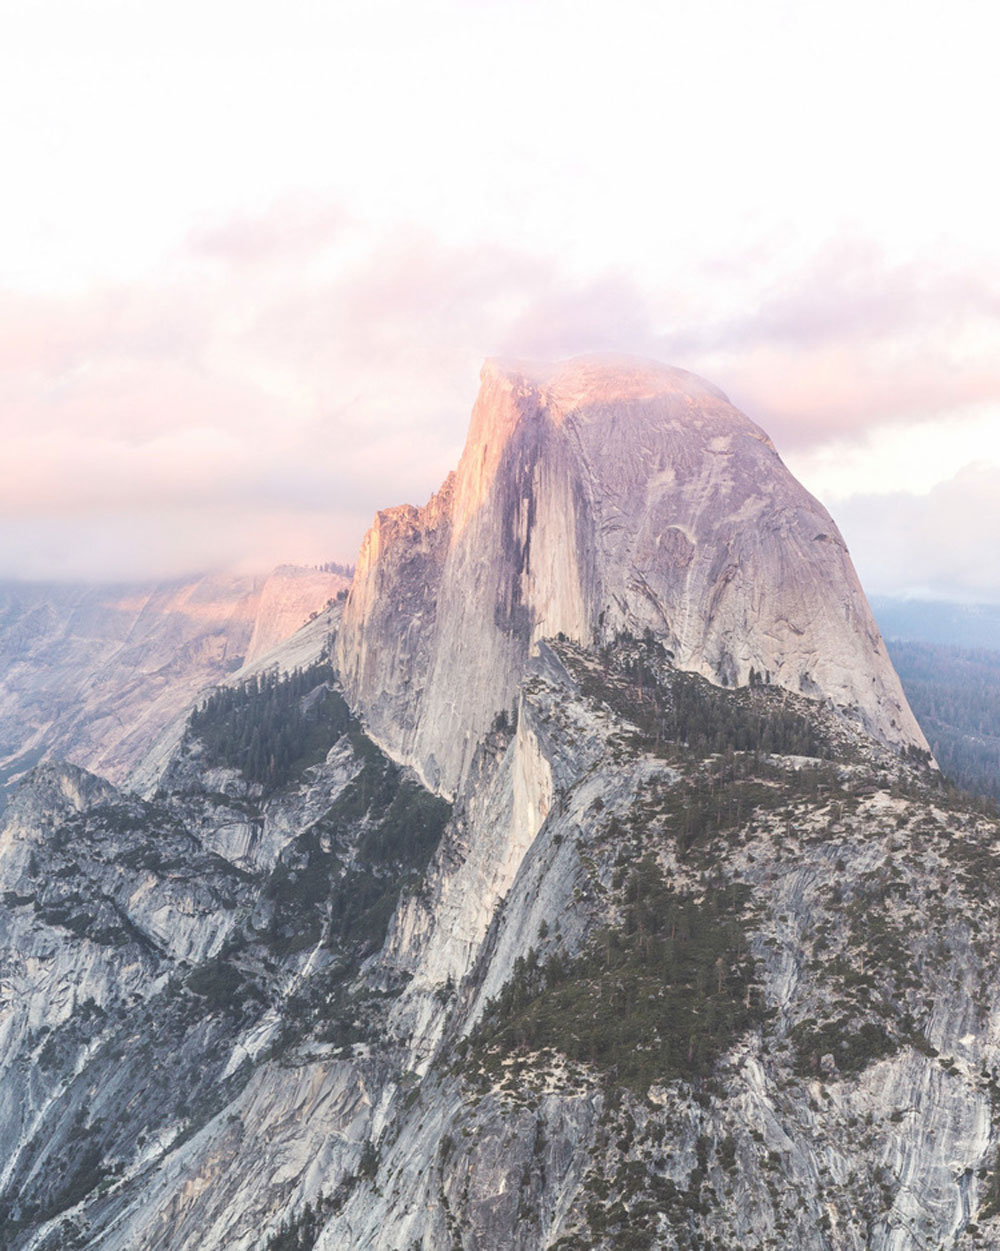 04-Christian-Schaffer-Yosemite-Half-Dome-Sunrise